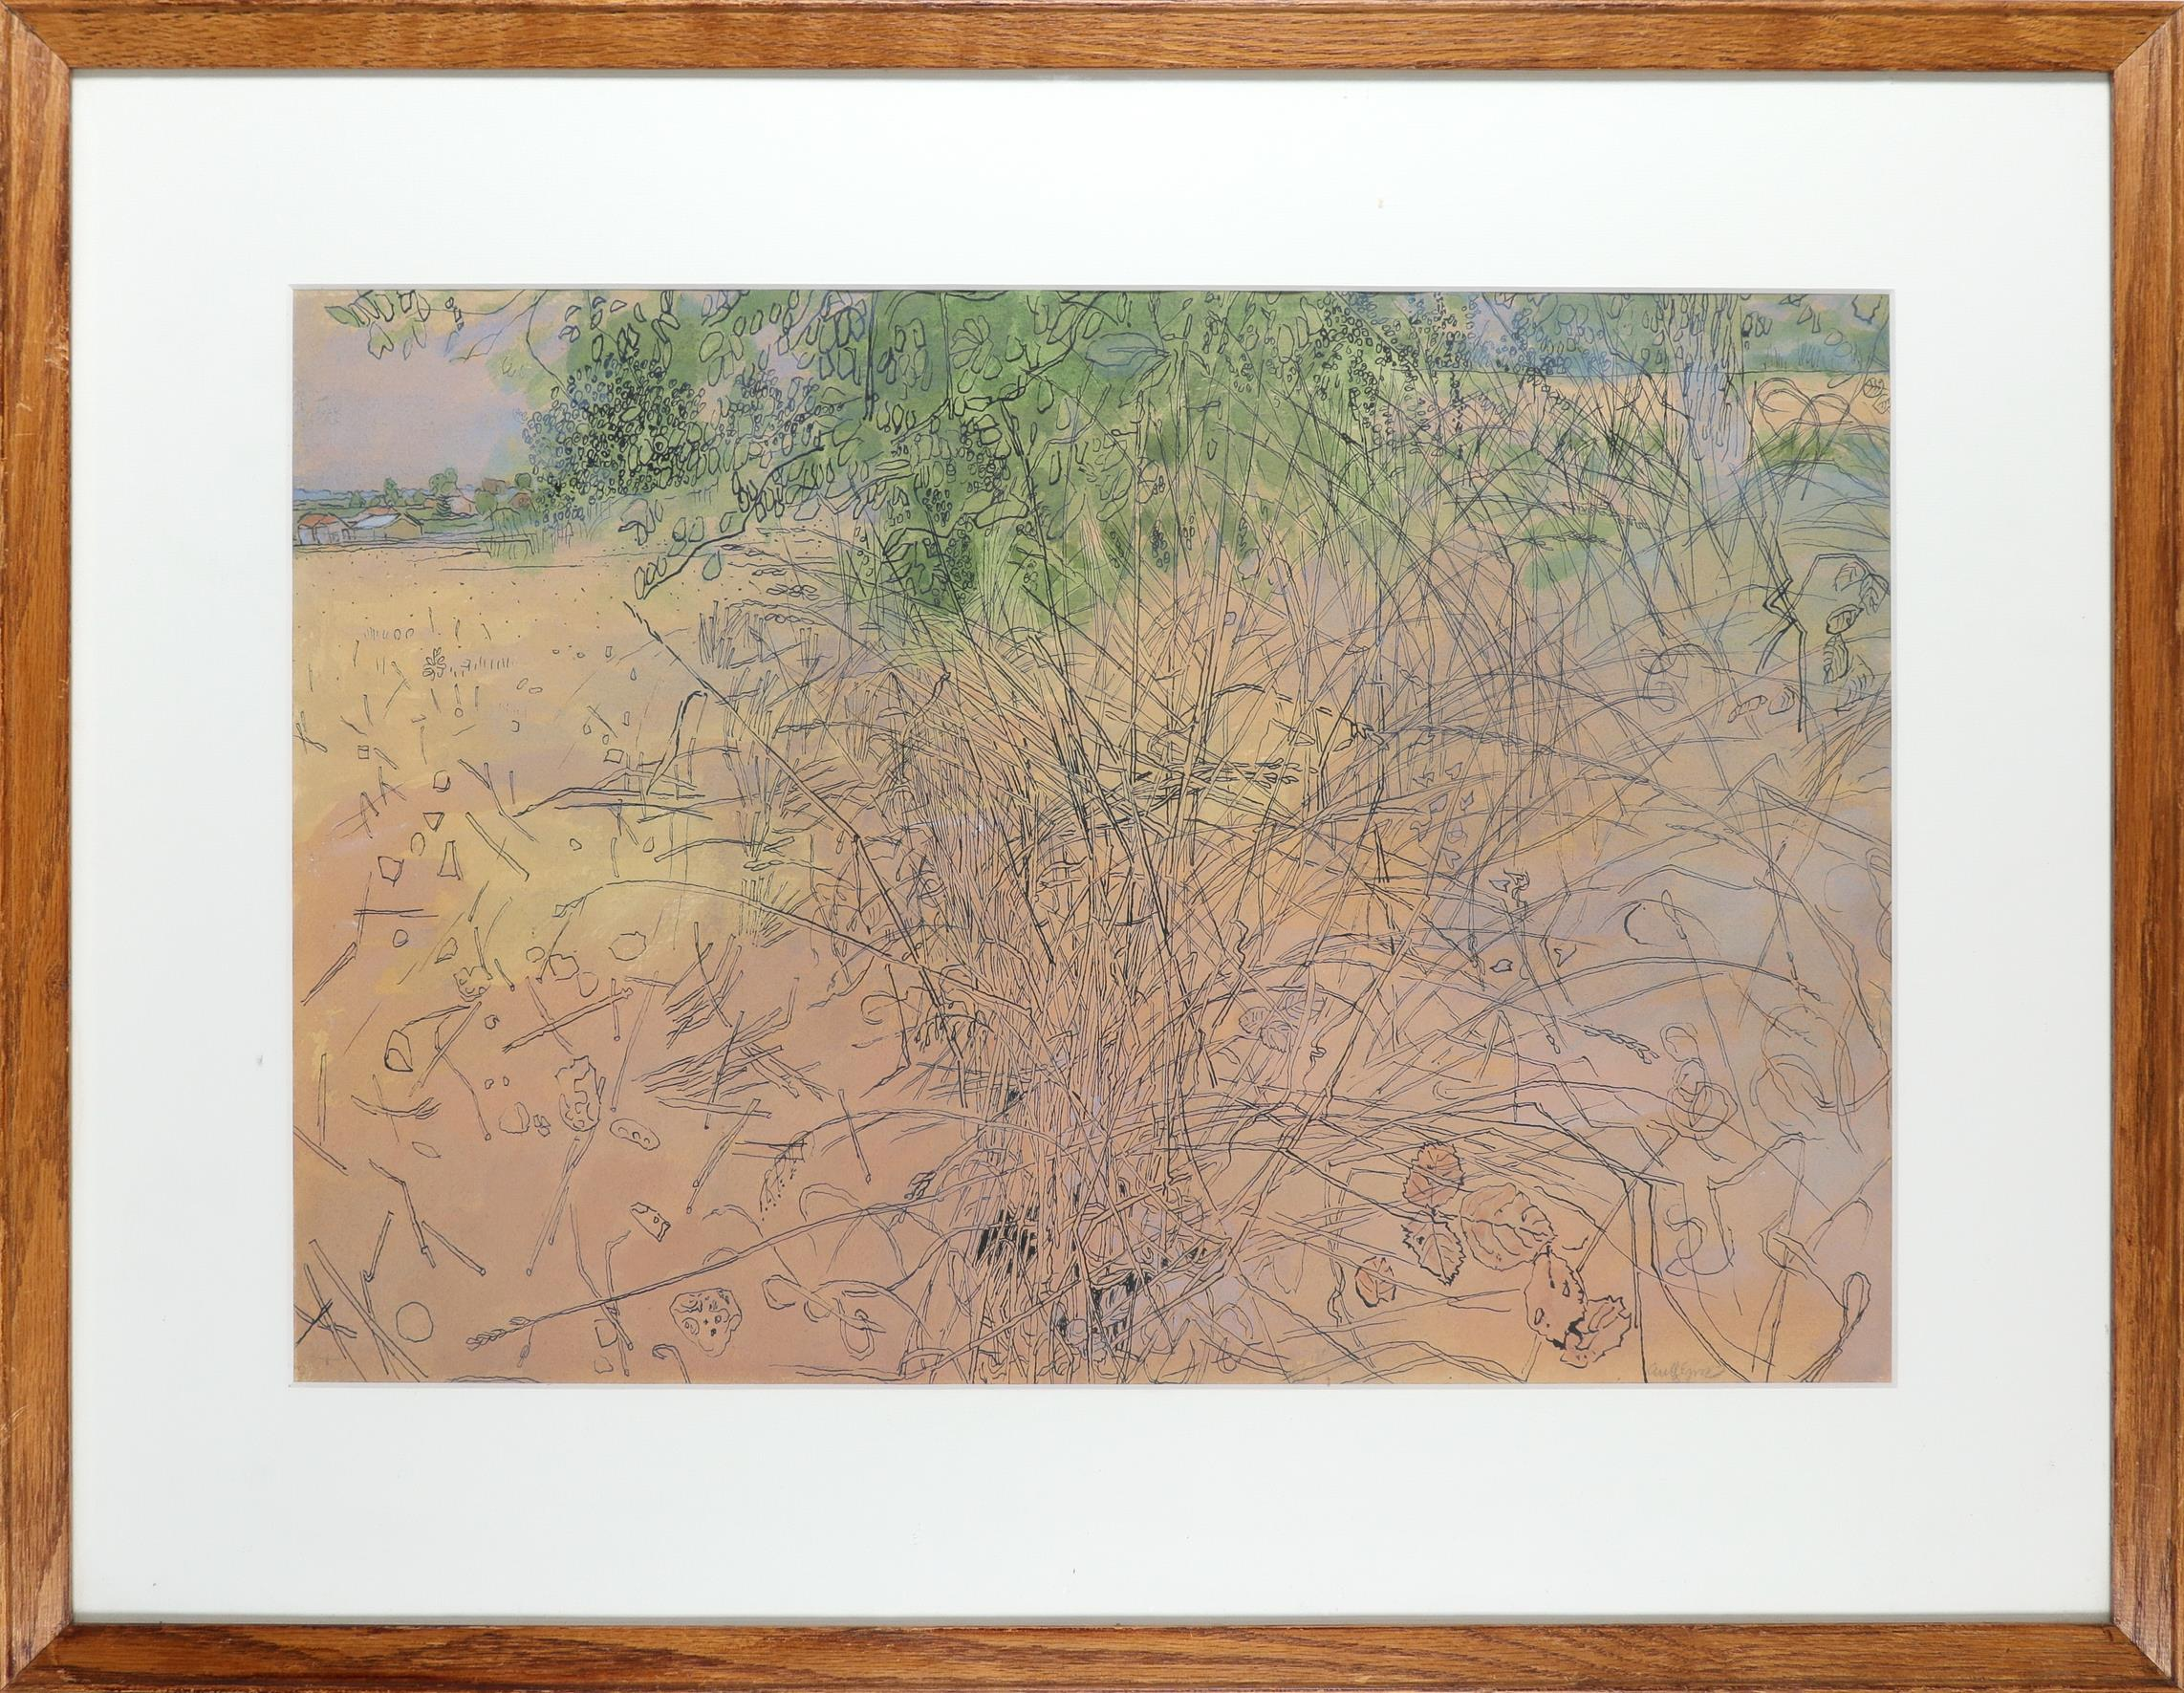 ‡Anthony Gross CBE, RA (1905-1984) The thicket Signed anyGross (lower right) Watercolour and pen and - Image 2 of 3